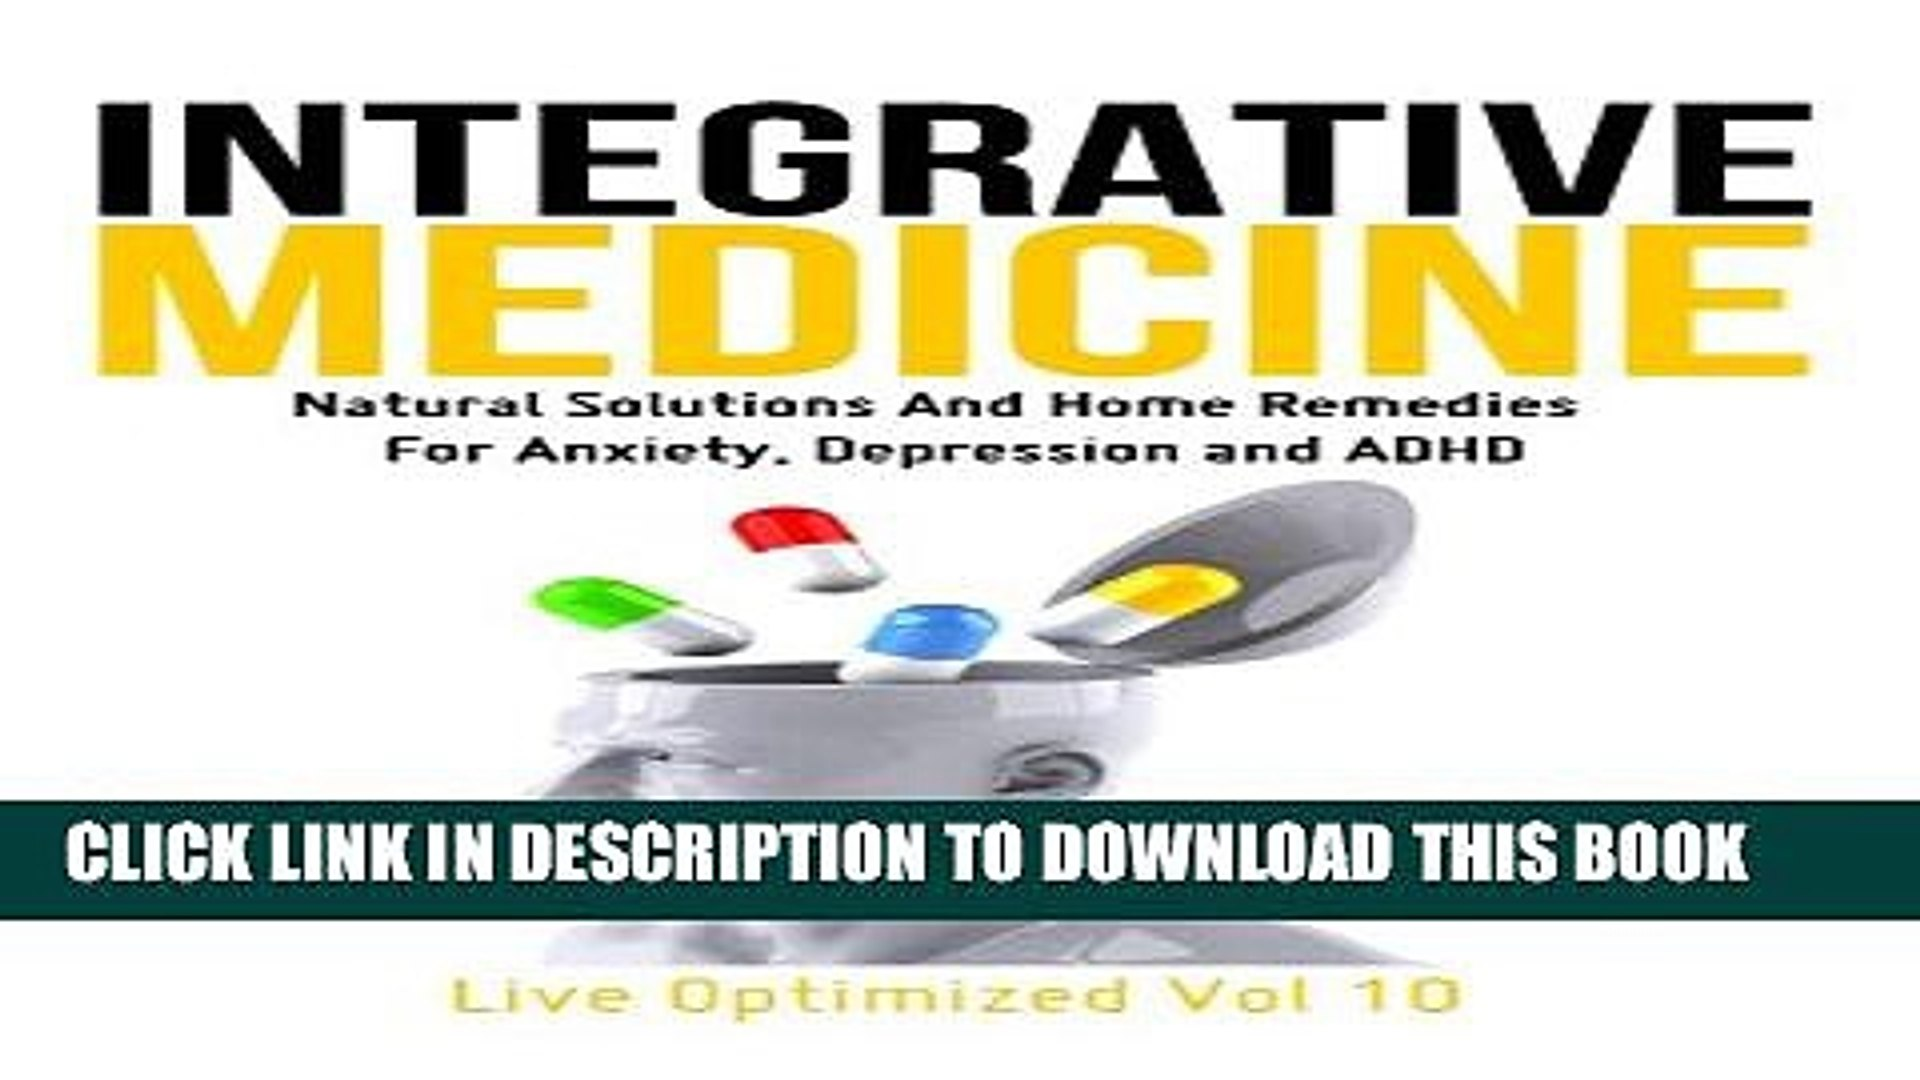 [PDF] Integrative Medicine: Natural Solutions And Home Remedies For  Anxiety, Depression And ADHD